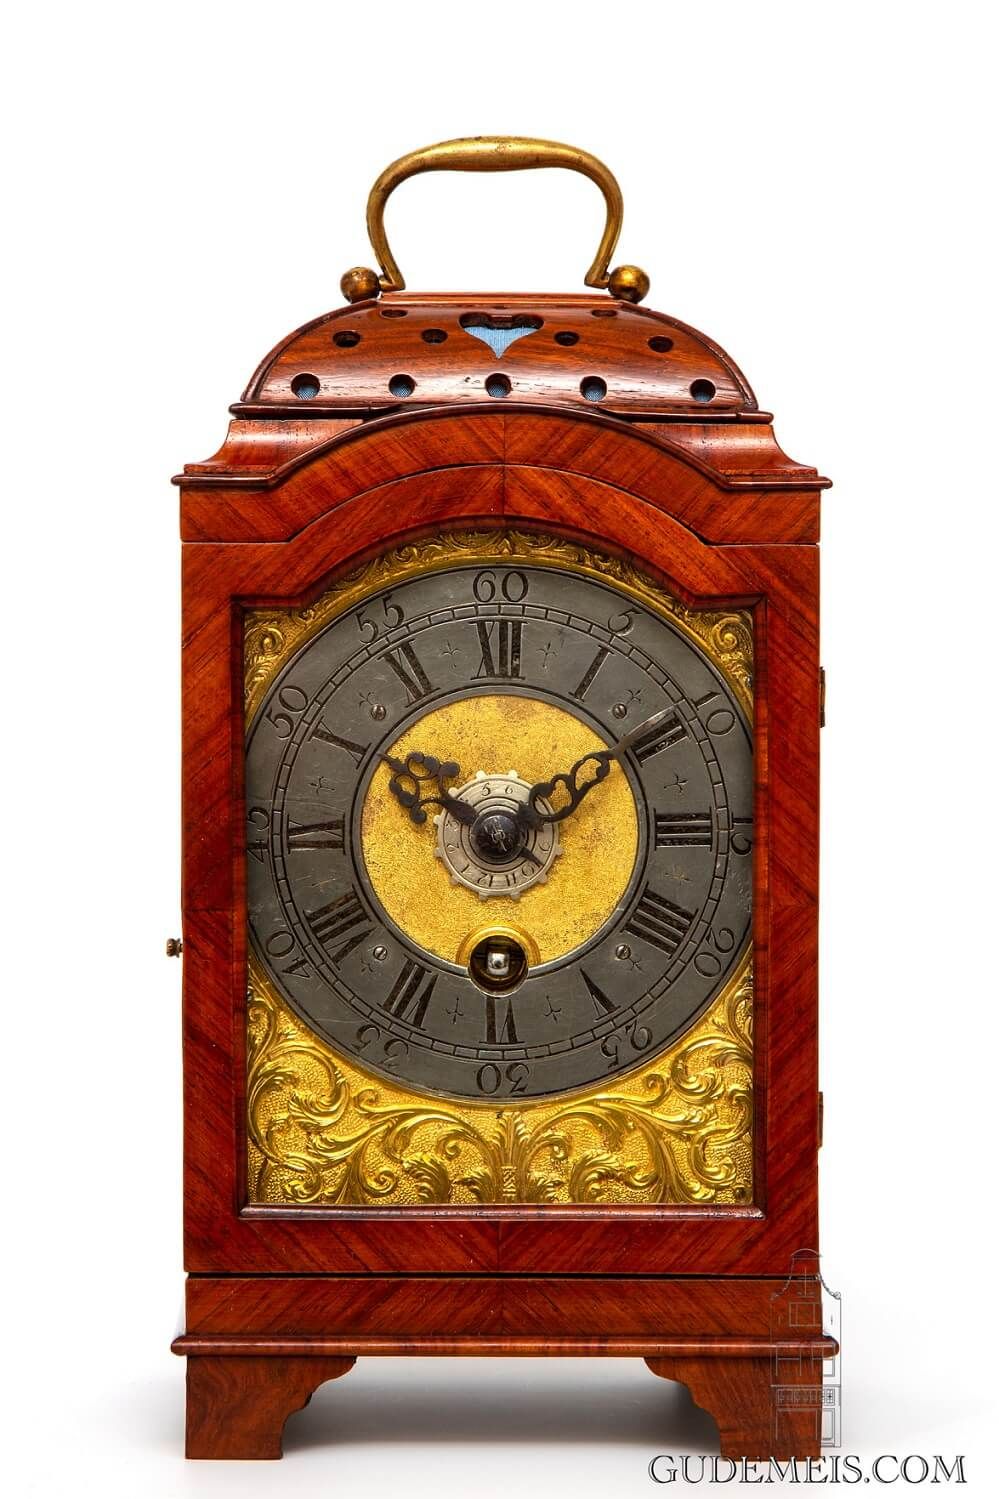 Swiss-Geneva-Louis XVI-kingswood-pendule-officier-ormolu-gilt- Bronze-travel-quarter-repeating-alarm-antique-clock-Terrot-Thuillier-